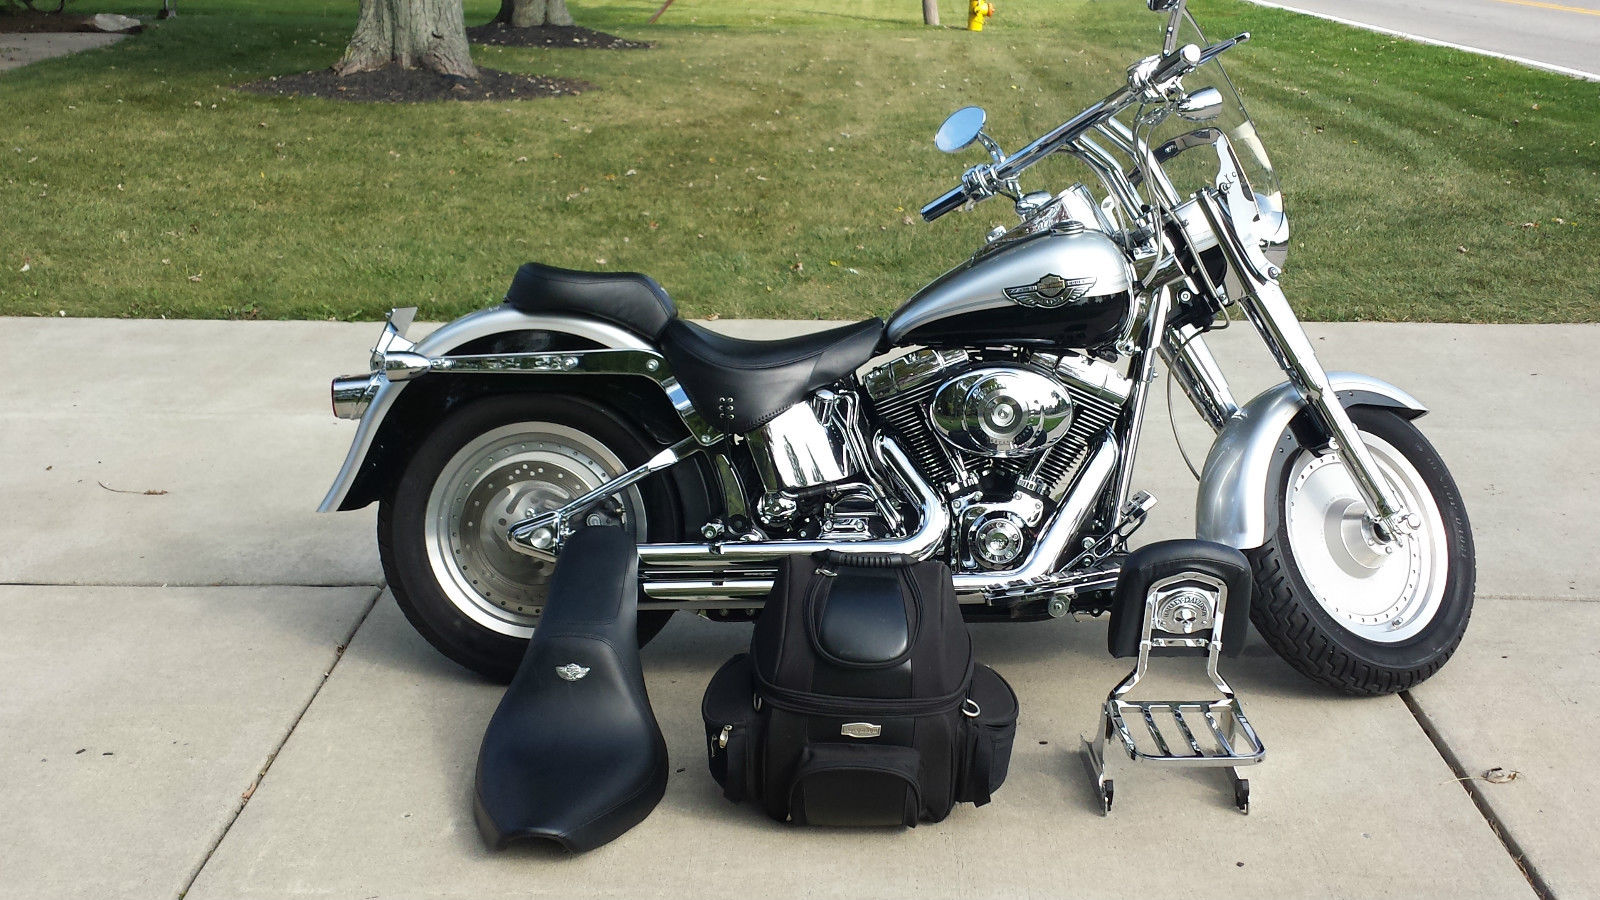 for sale 2003 harley davidson 100th anniversary fat boy. Black Bedroom Furniture Sets. Home Design Ideas